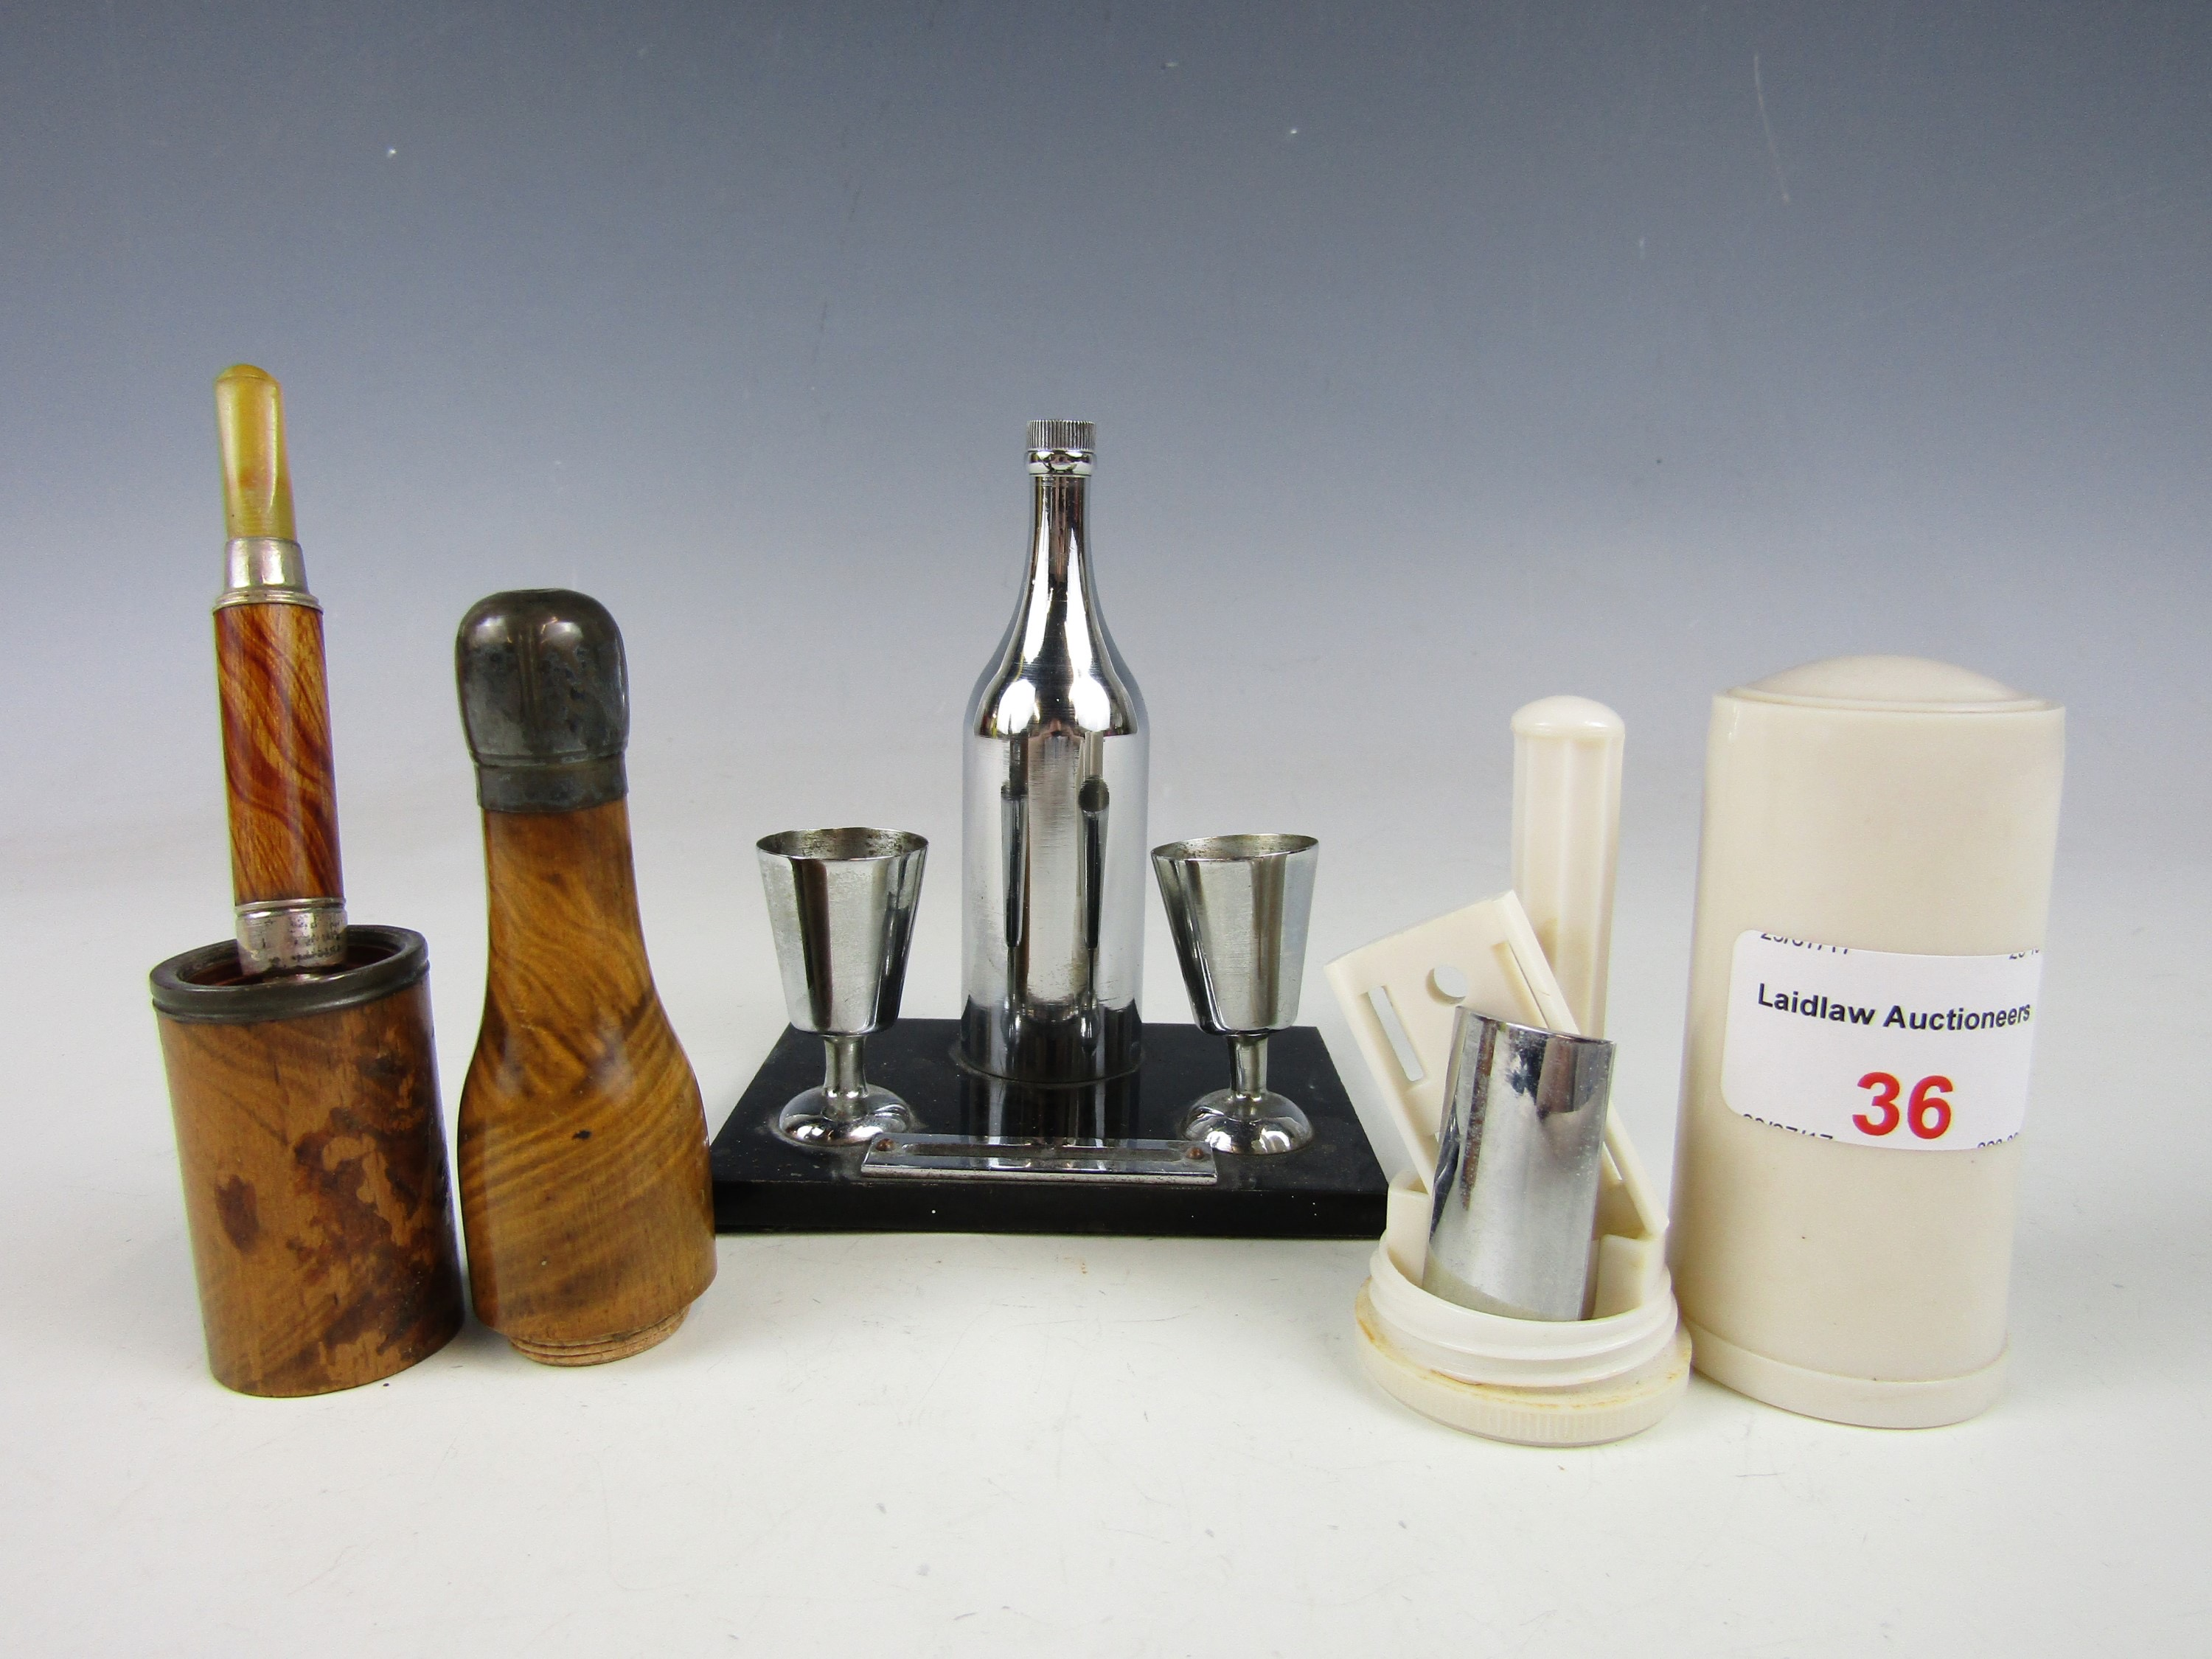 Lot 36 - Sundry kitsch collectibles including an Art Deco novelty table cigar lighter modelled as a bottle